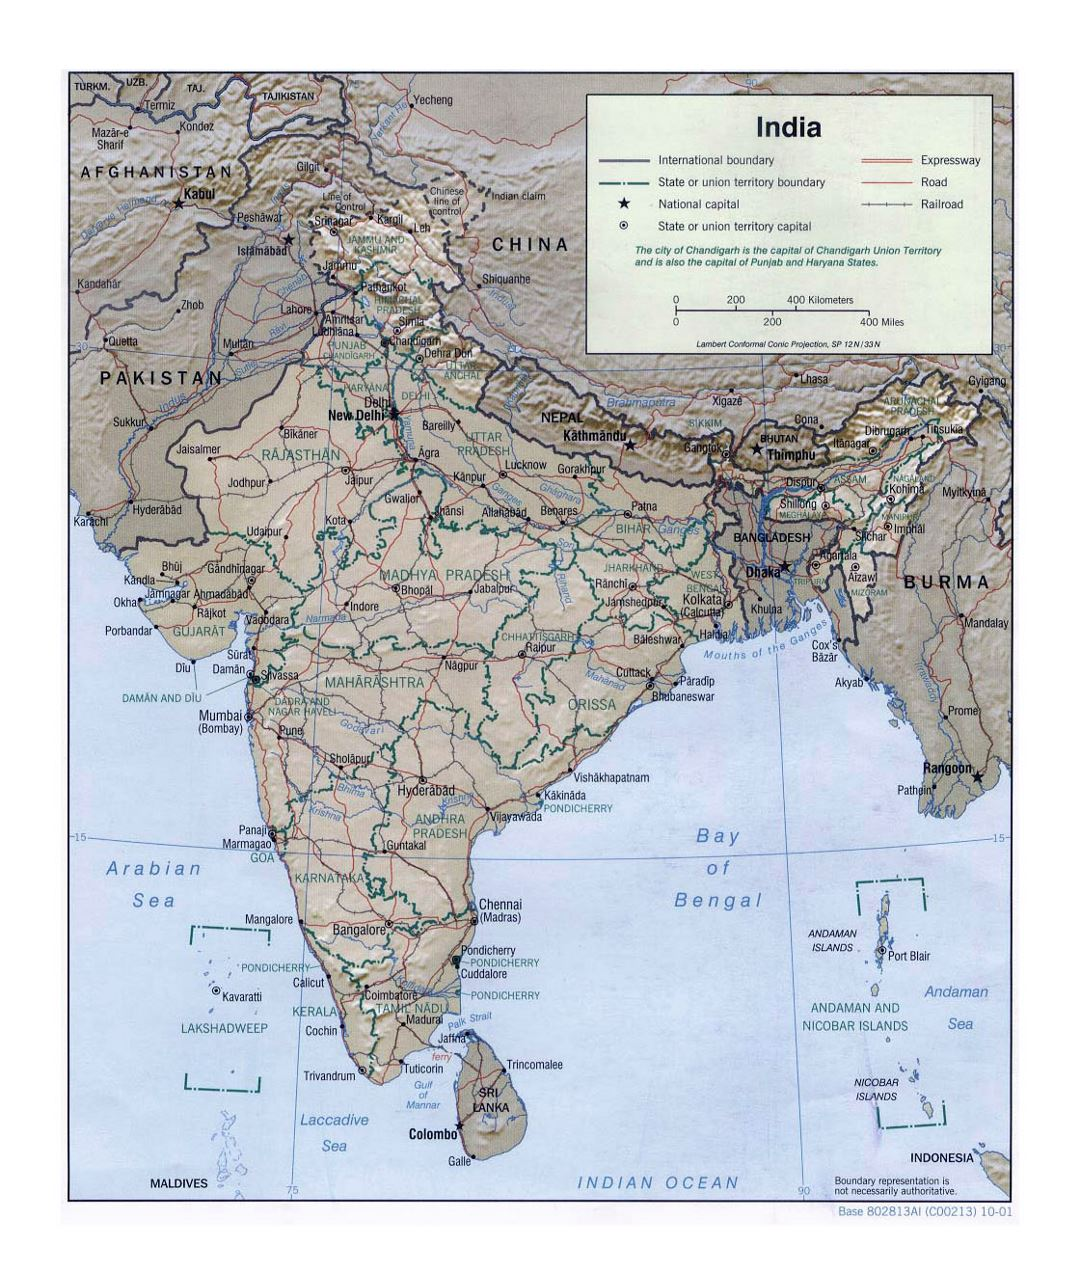 Large political and administrative map of India with relief, roads, railroads and major cities - 2001